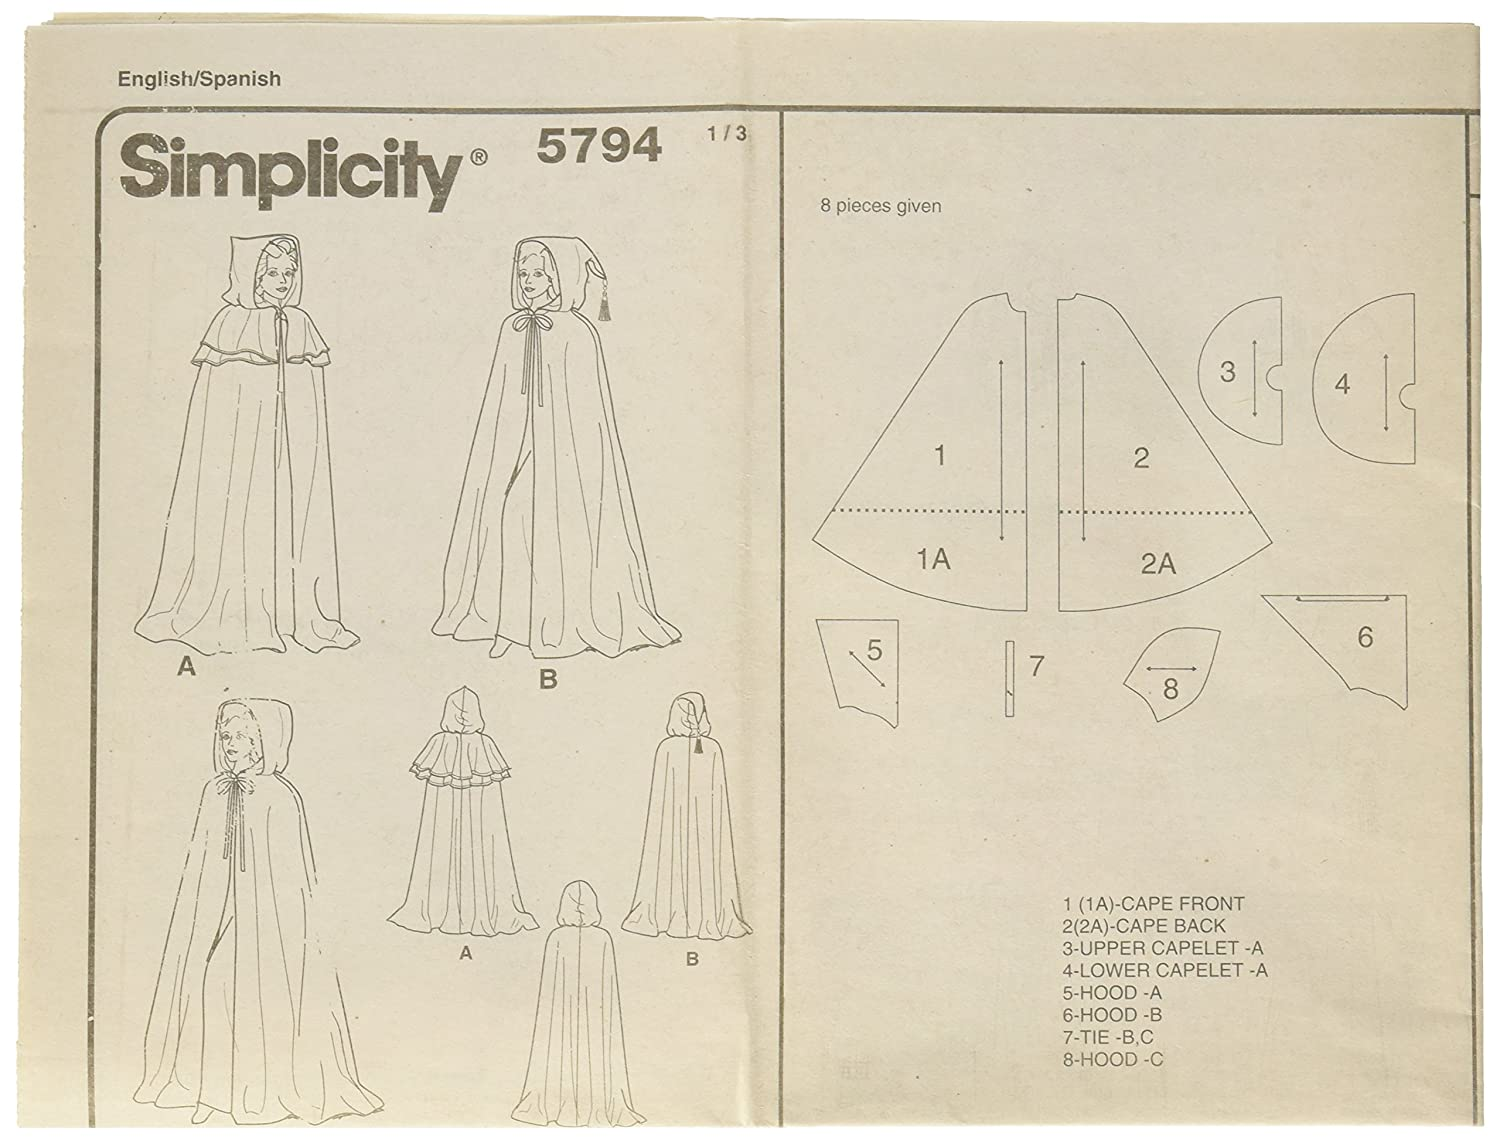 Amazon.com: Simplicity Sewing Pattern 5794 Misses Costumes, A (XS ...